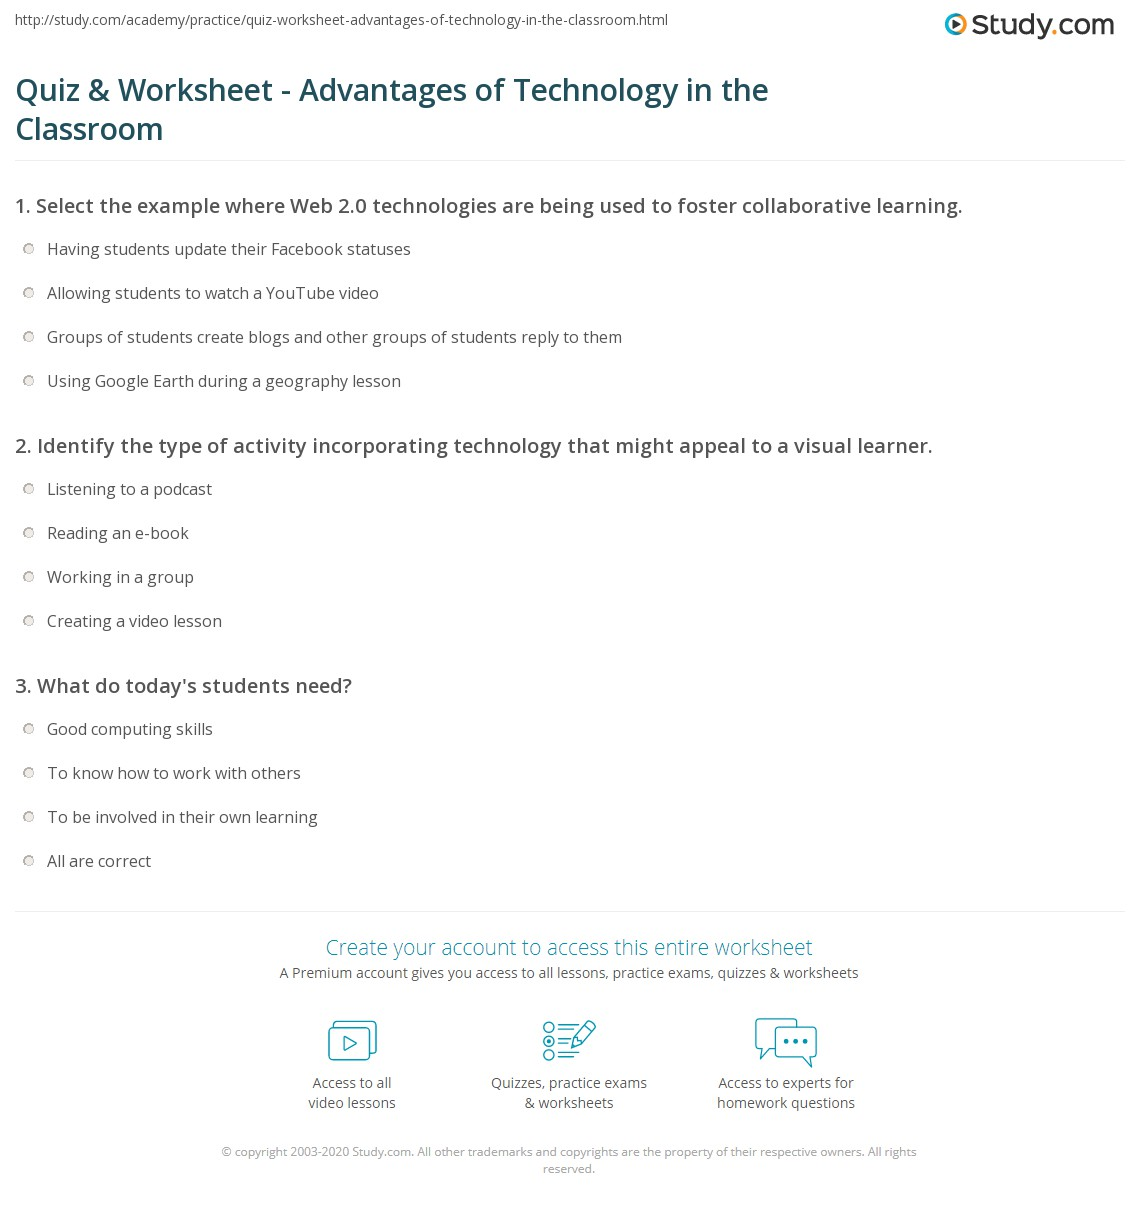 Quiz Worksheet Advantages Of Technology In The Classroom Study